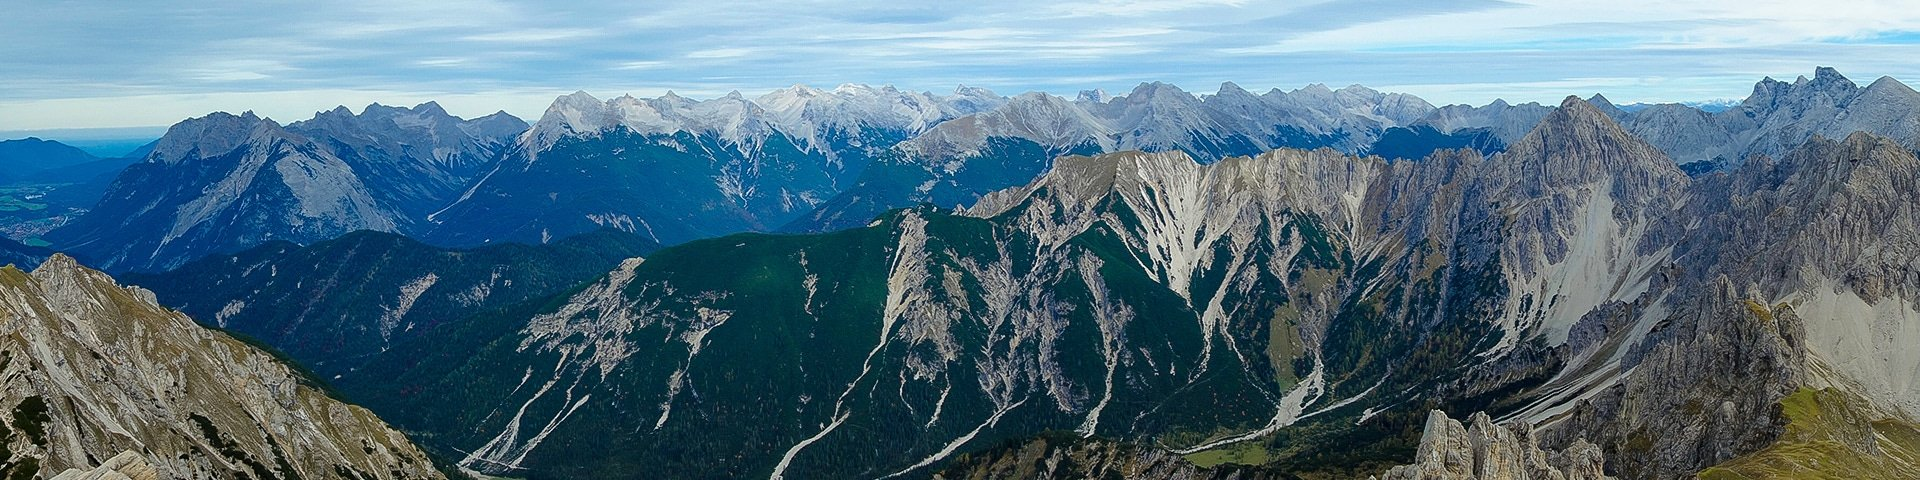 Panorama of the Reither Spitze hike near Innsbruck, Austria